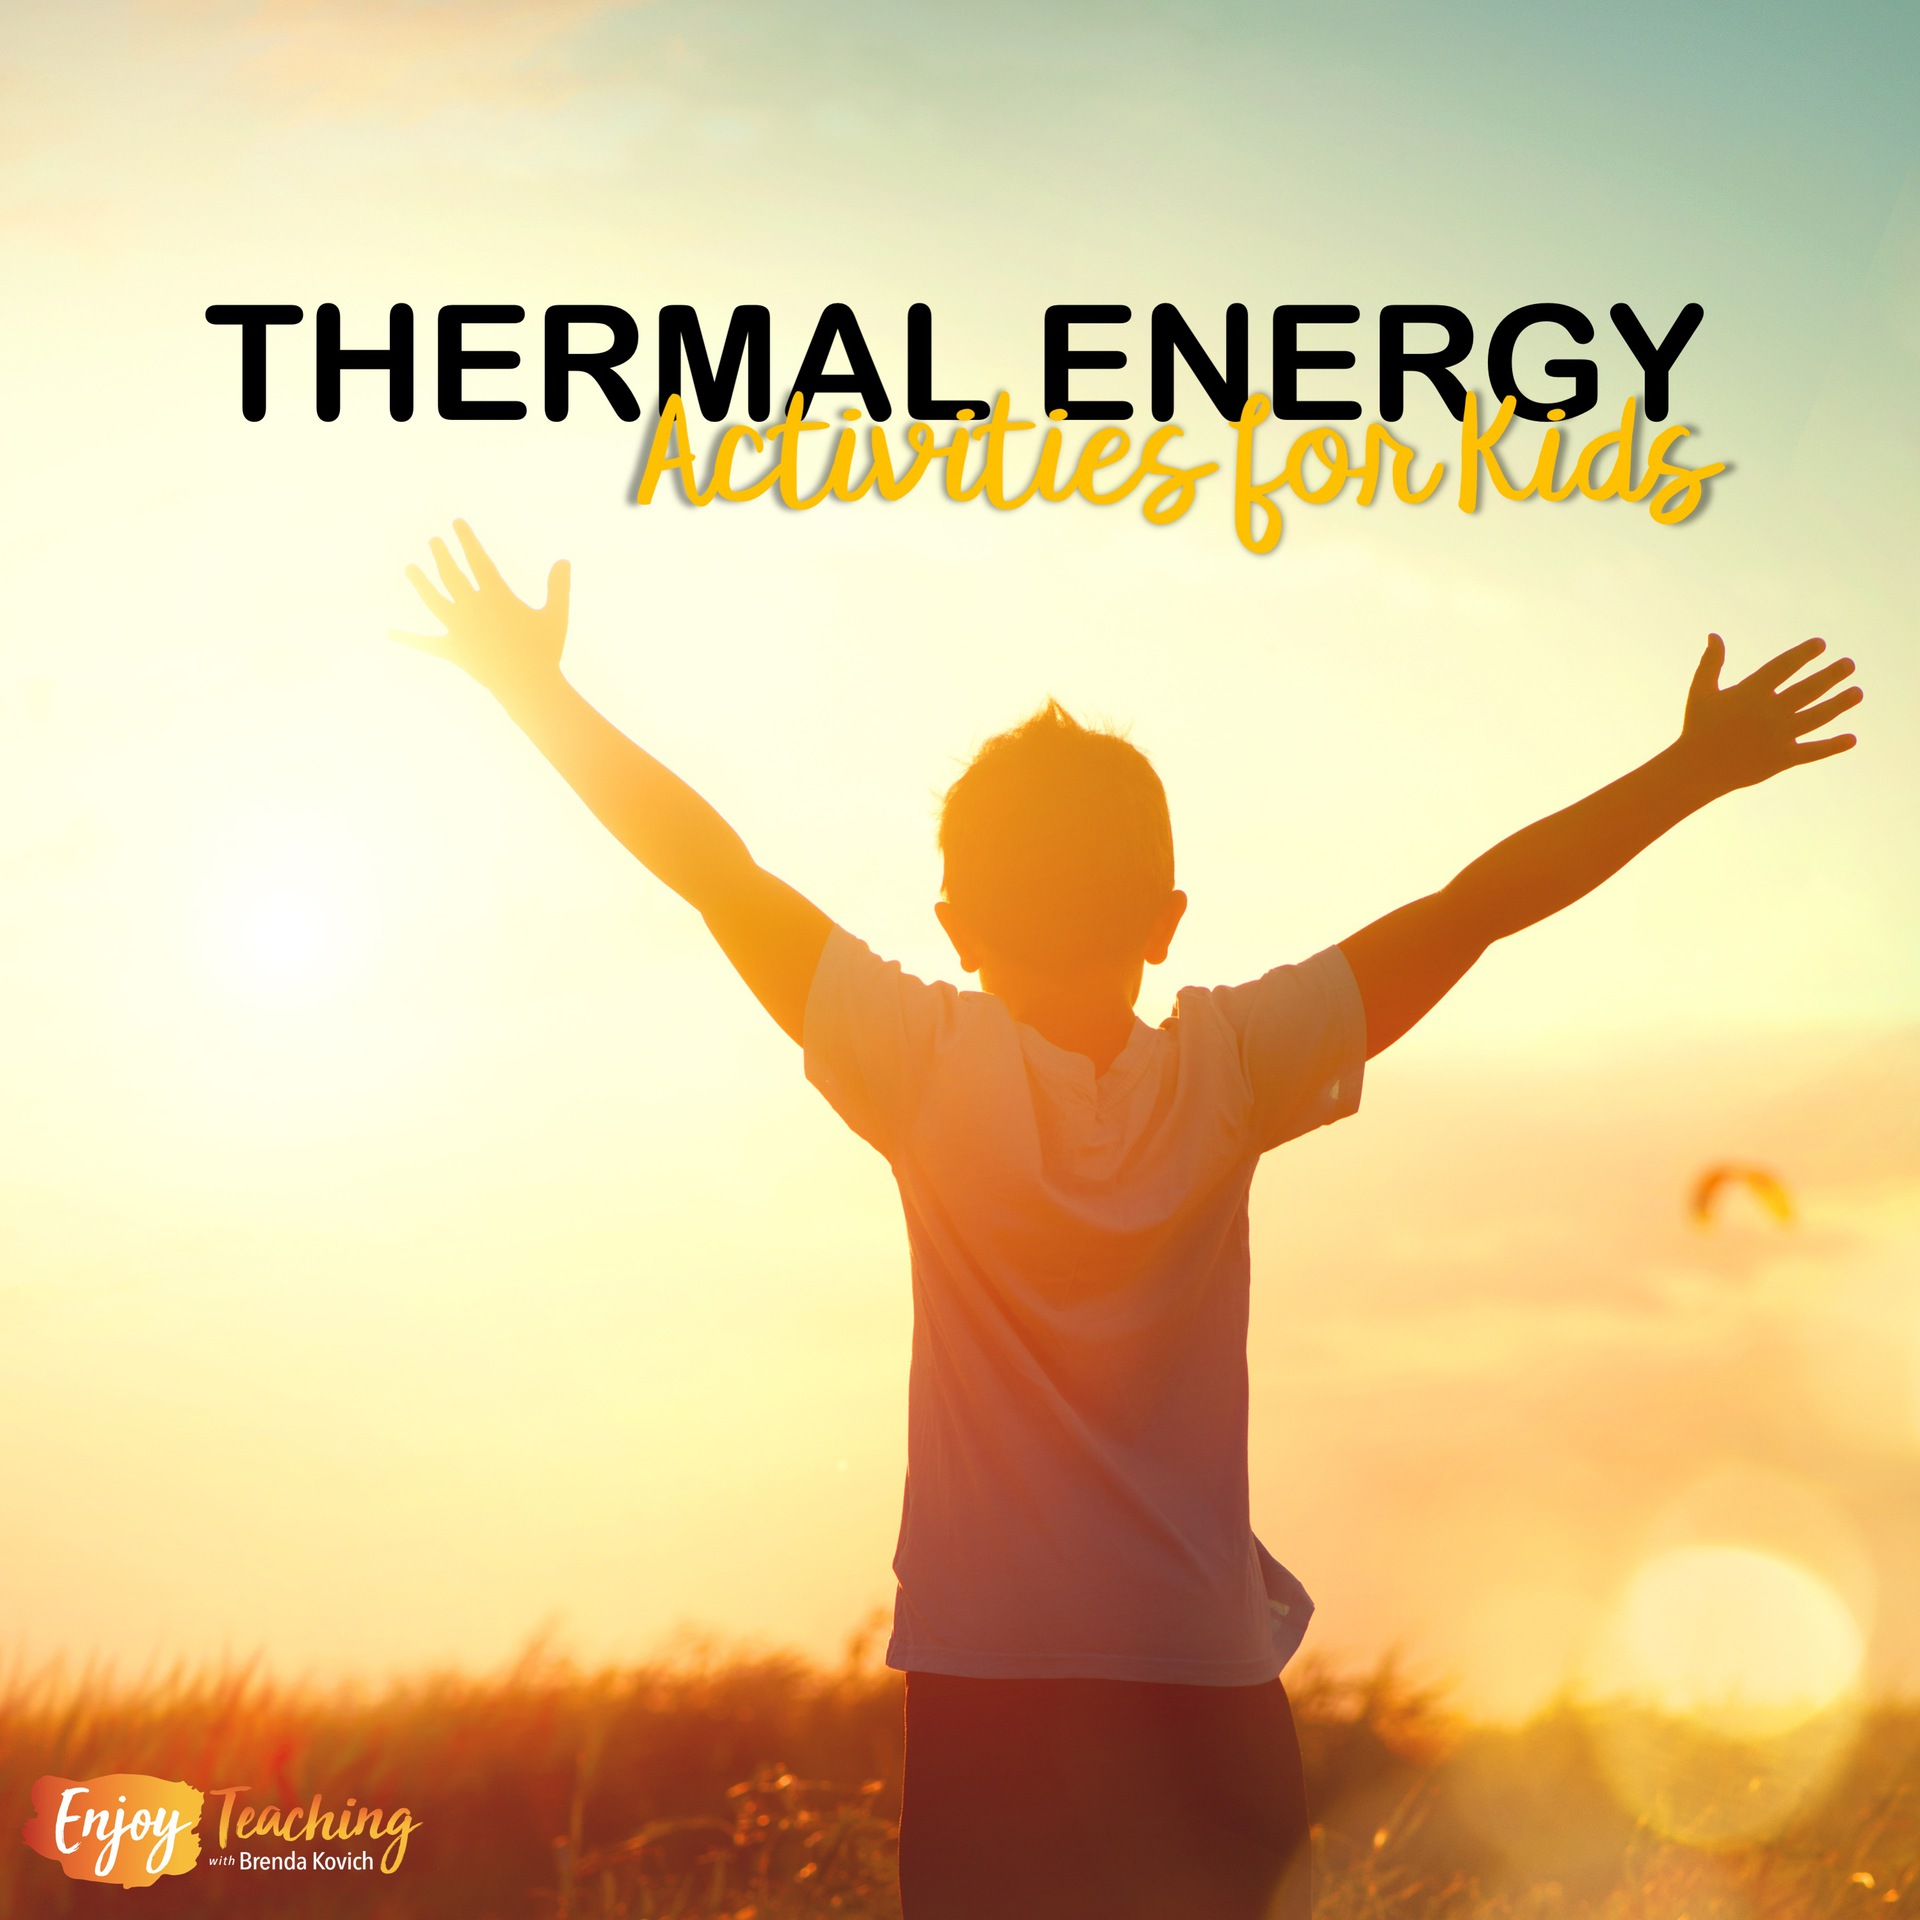 Teaching Thermal Energy With Heat Activities For Kids